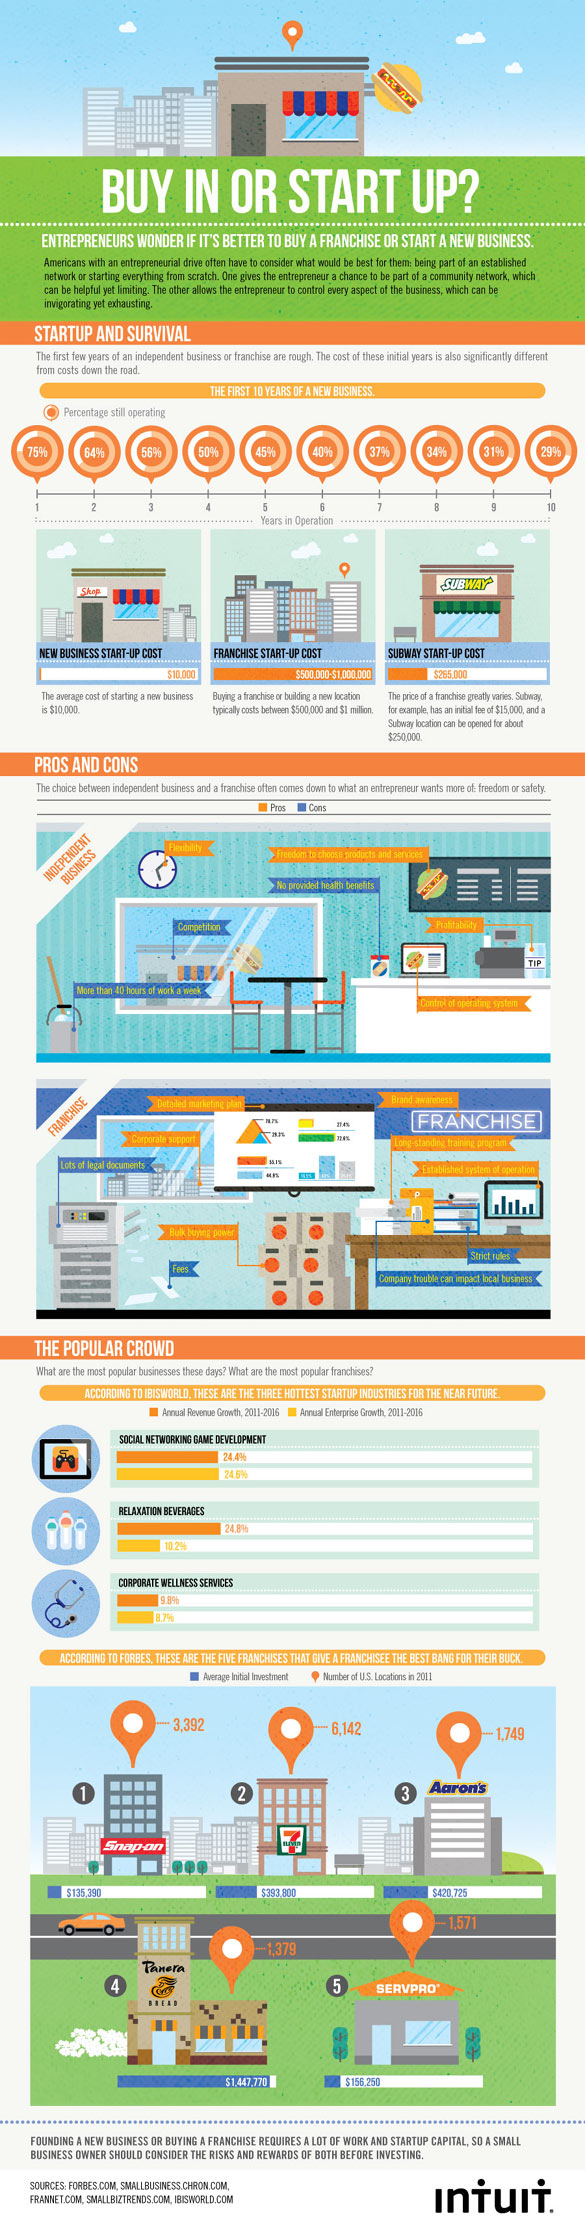 franchising infographic